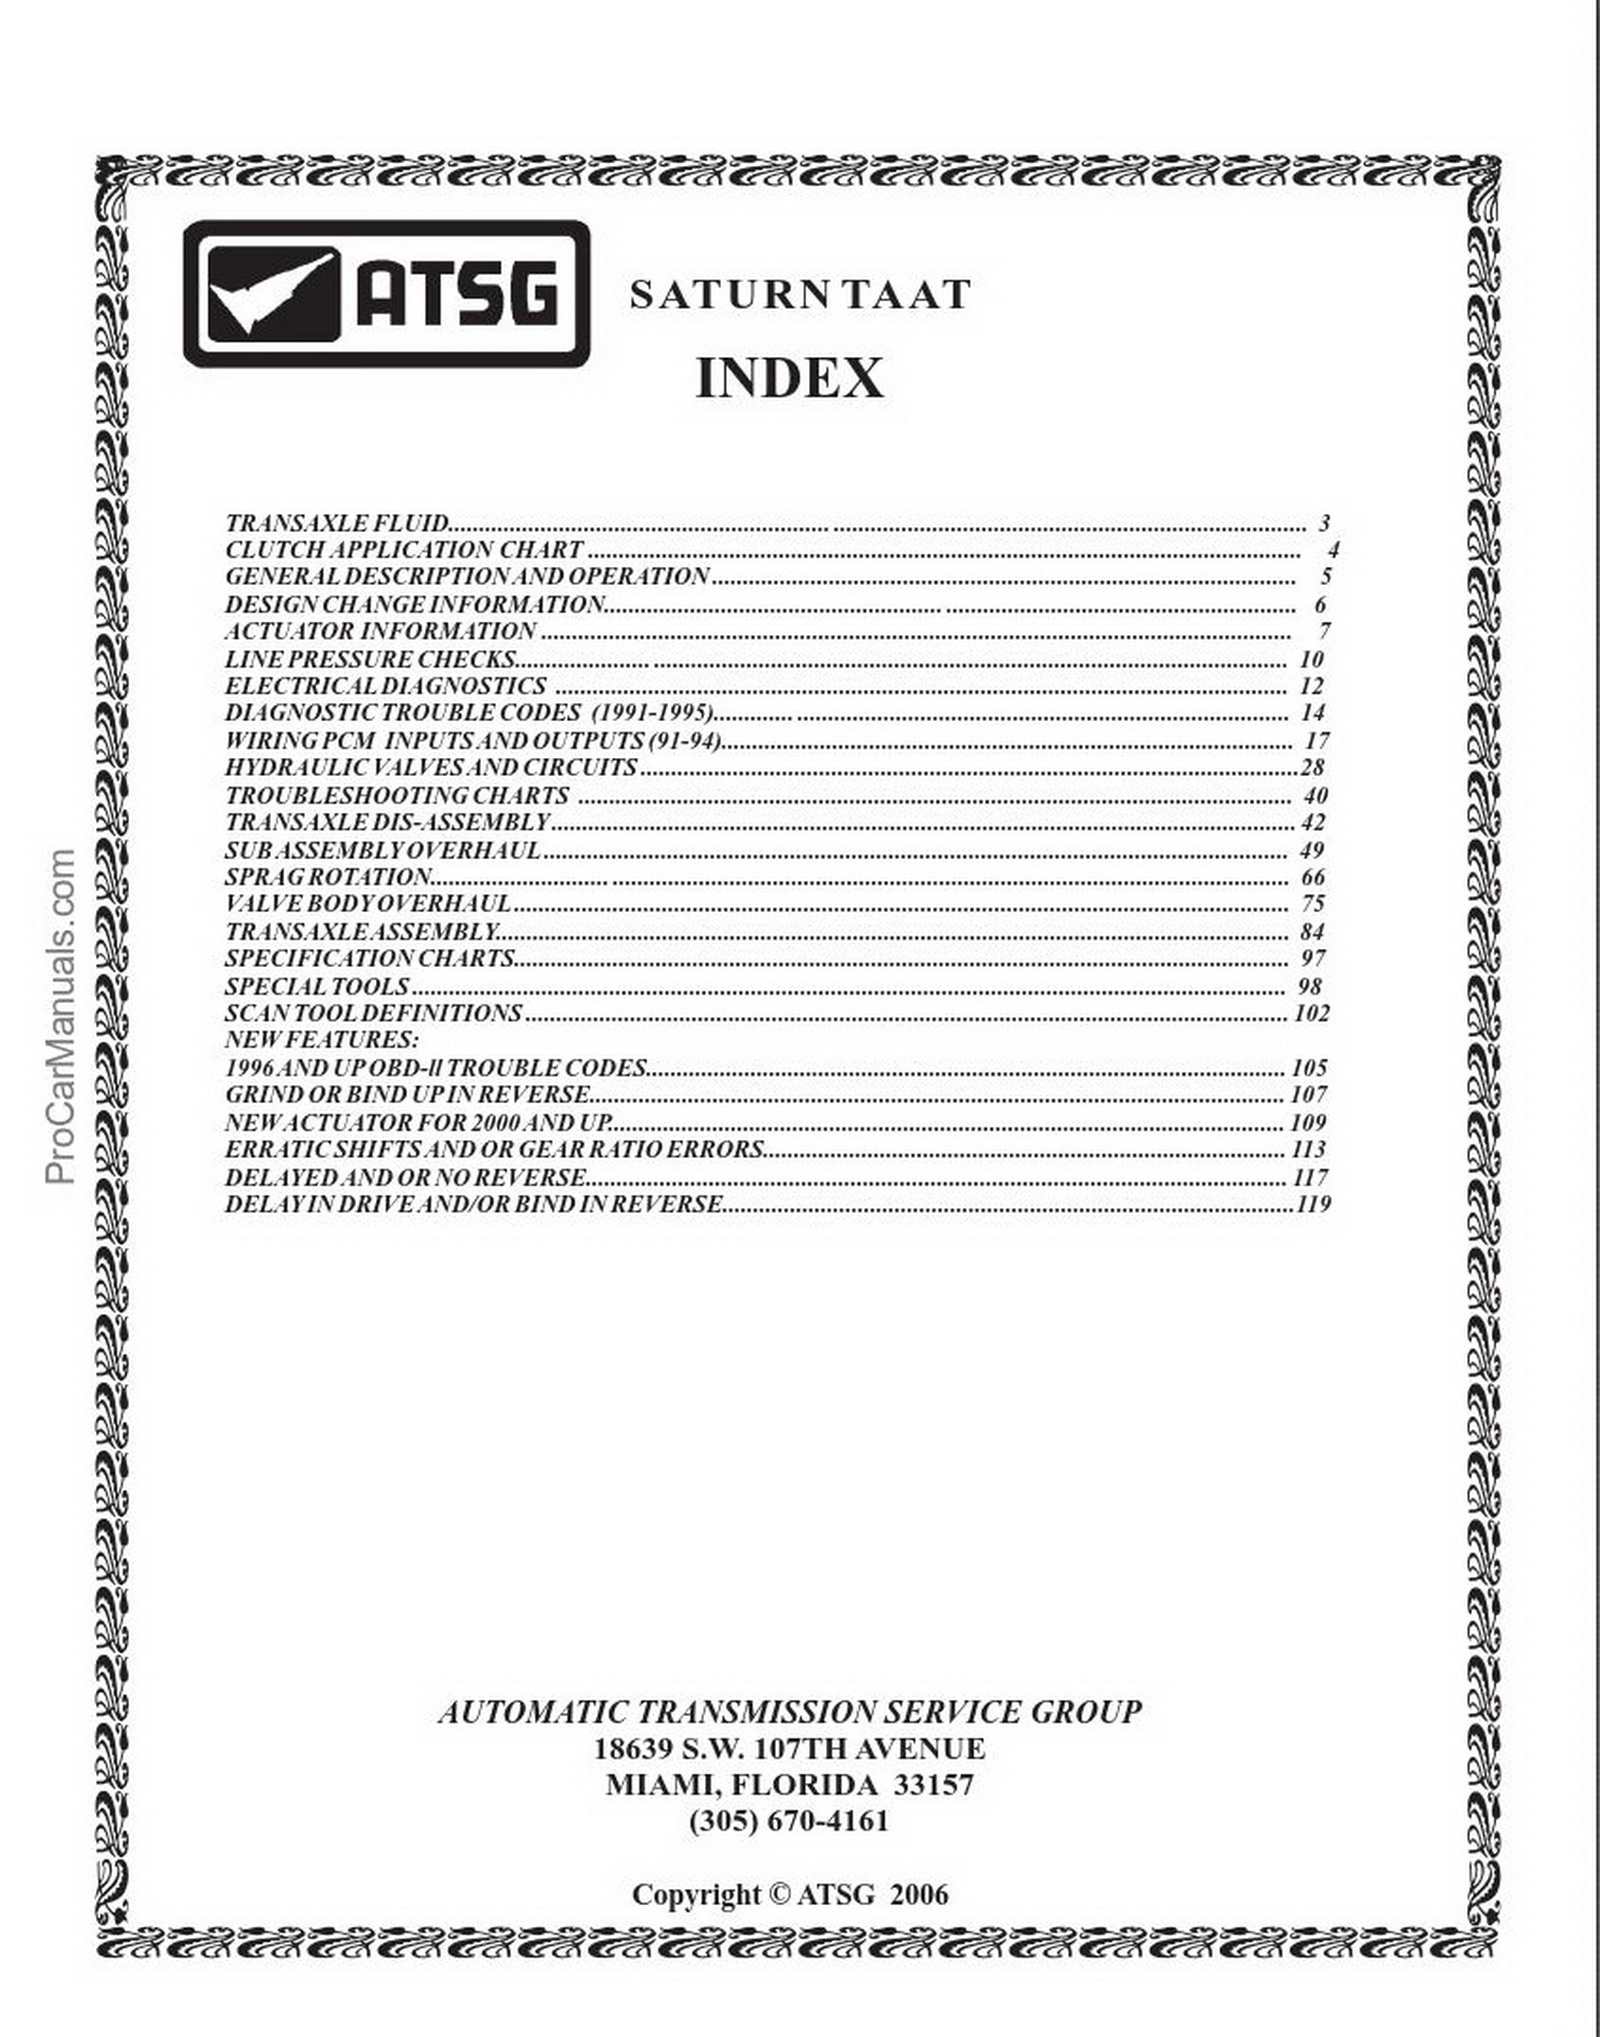 Saturn – ATSG (Automatic Transmission Service Group)